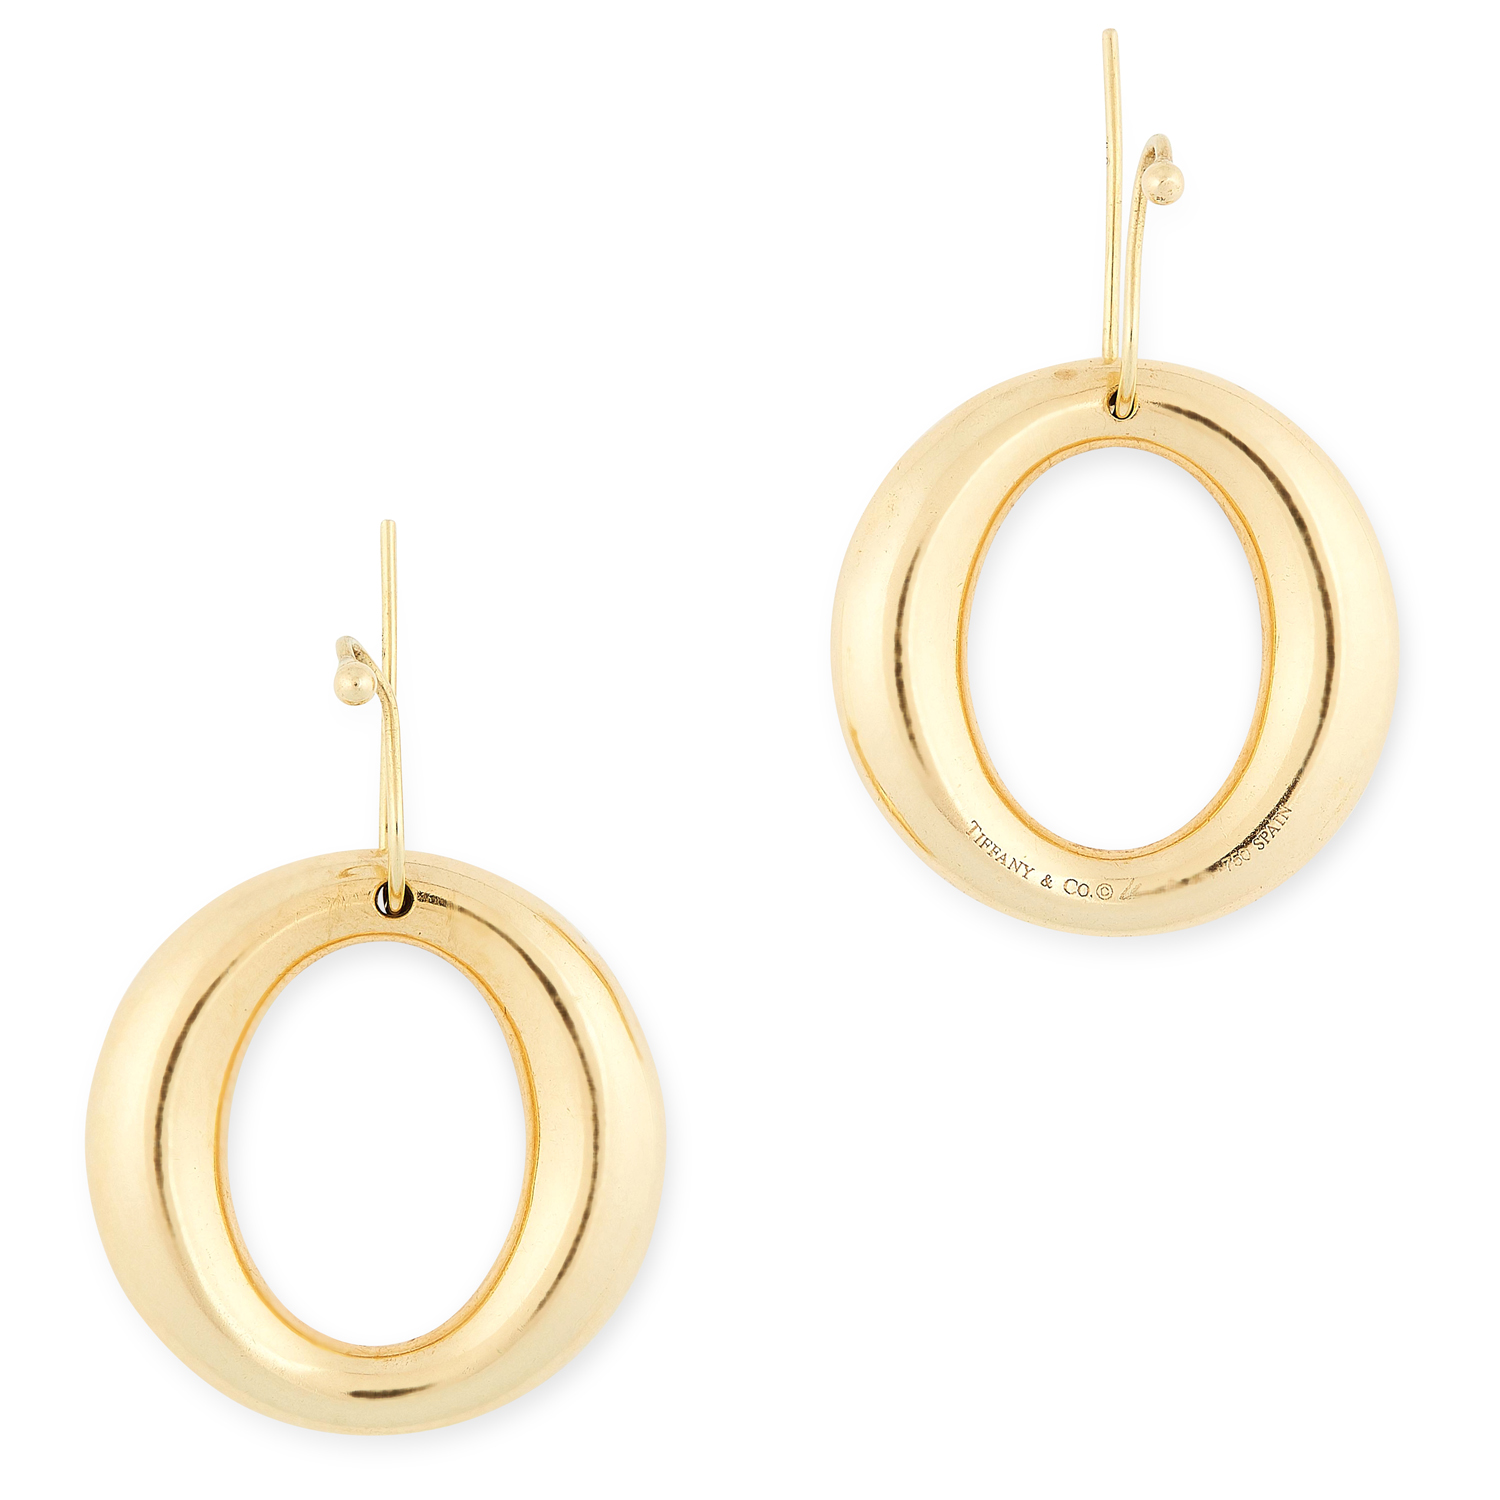 A PAIR OF SEVILLANA EARRINGS, ELSA PERETTI FOR TIFFANY & CO each designed as a graduated hoop